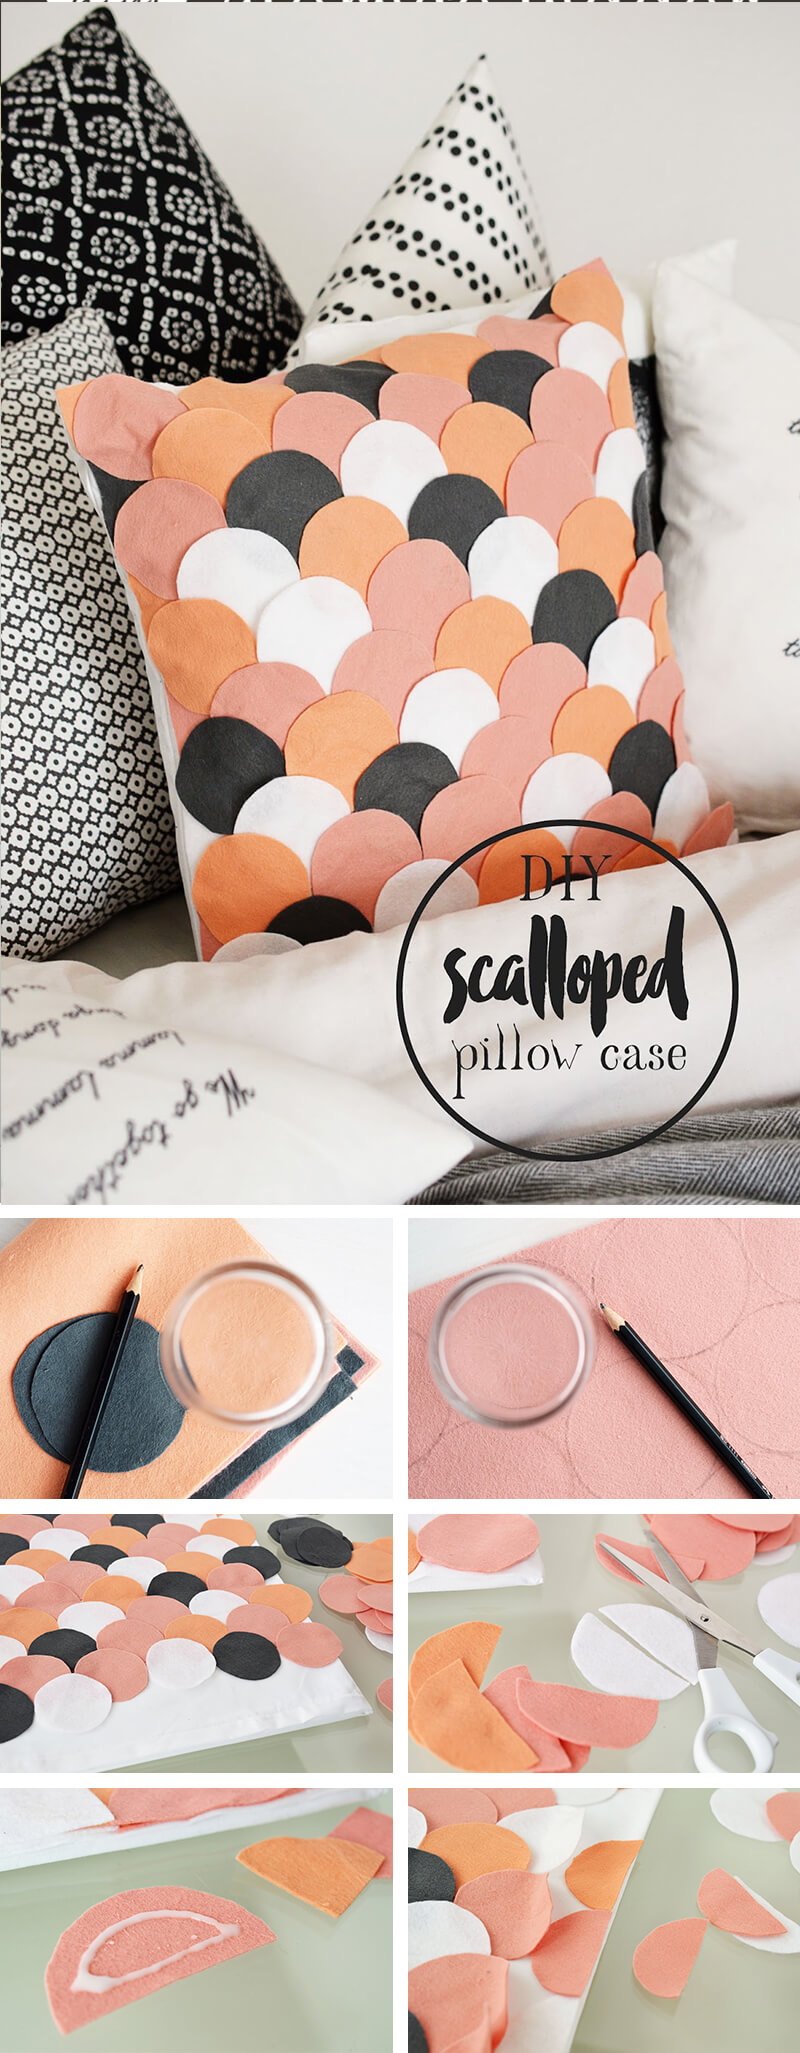 26 Best Diy Pillow Ideas And Designs For 2019